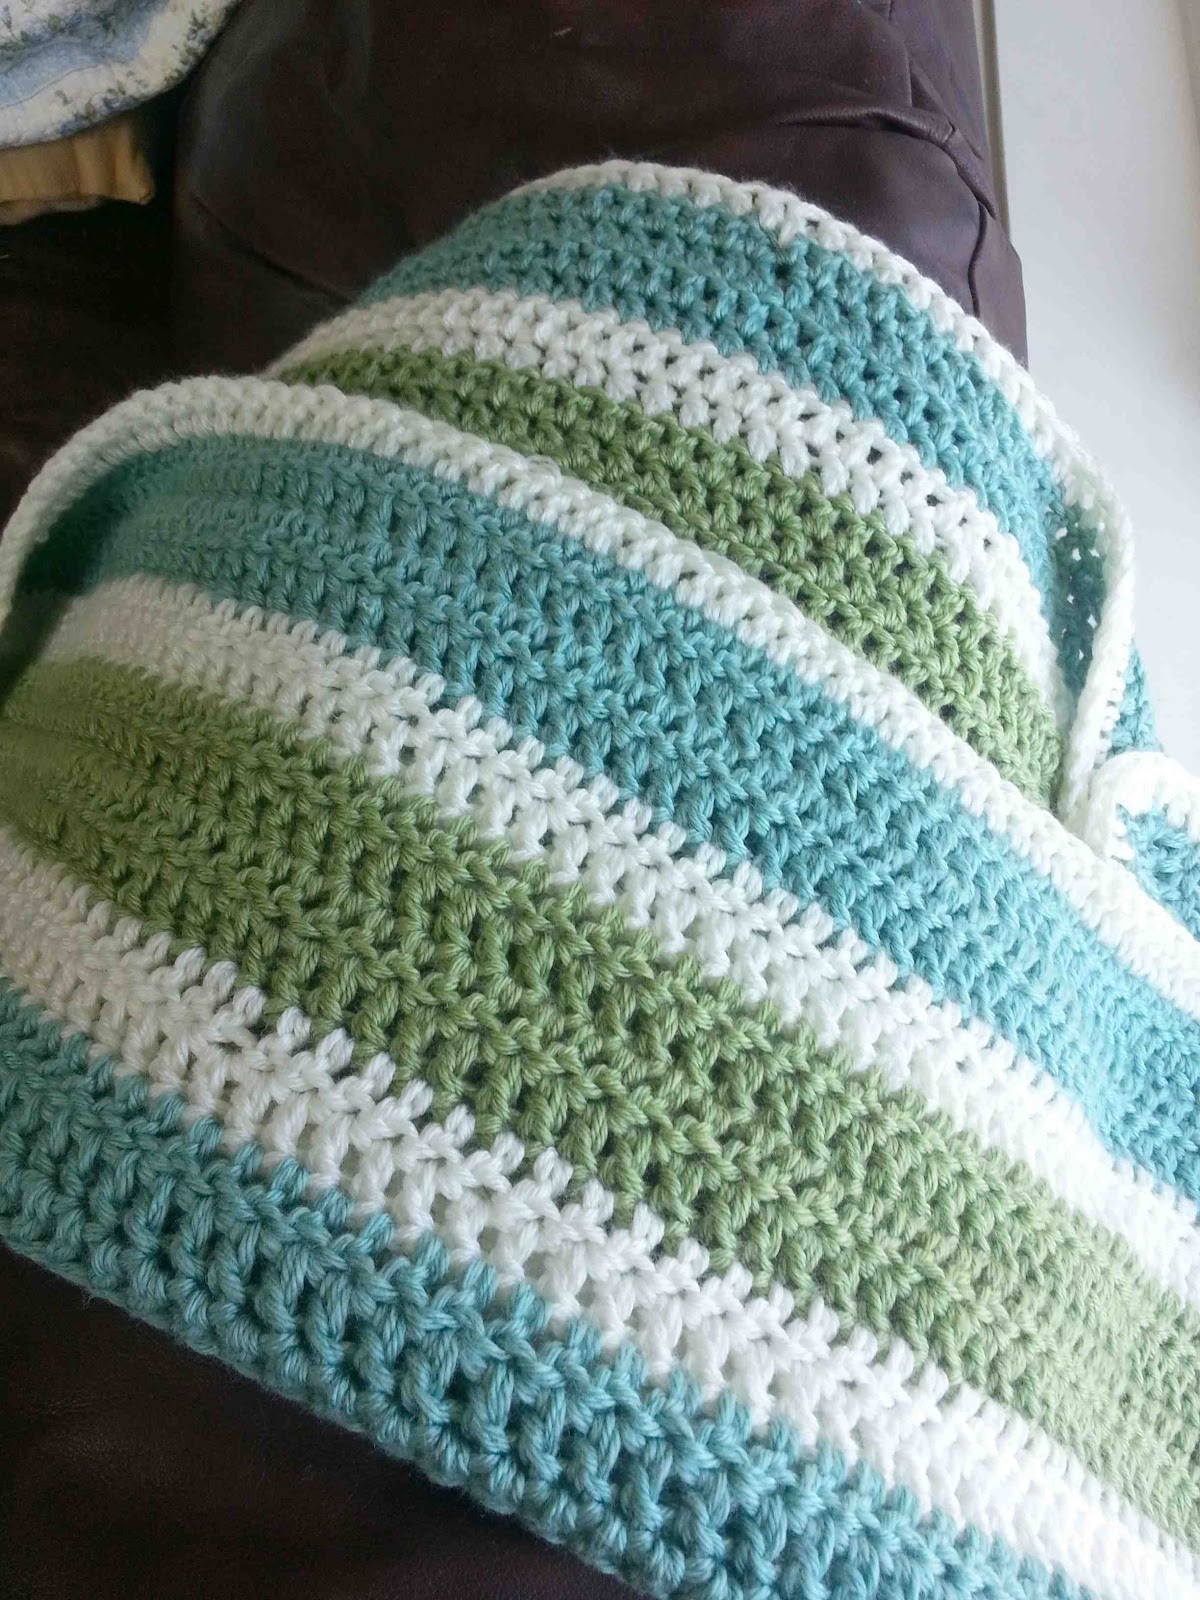 Crochet Throw Blanket Lovely Made by Me D with You Striped Crochet Afghan Of Great 44 Pics Crochet Throw Blanket